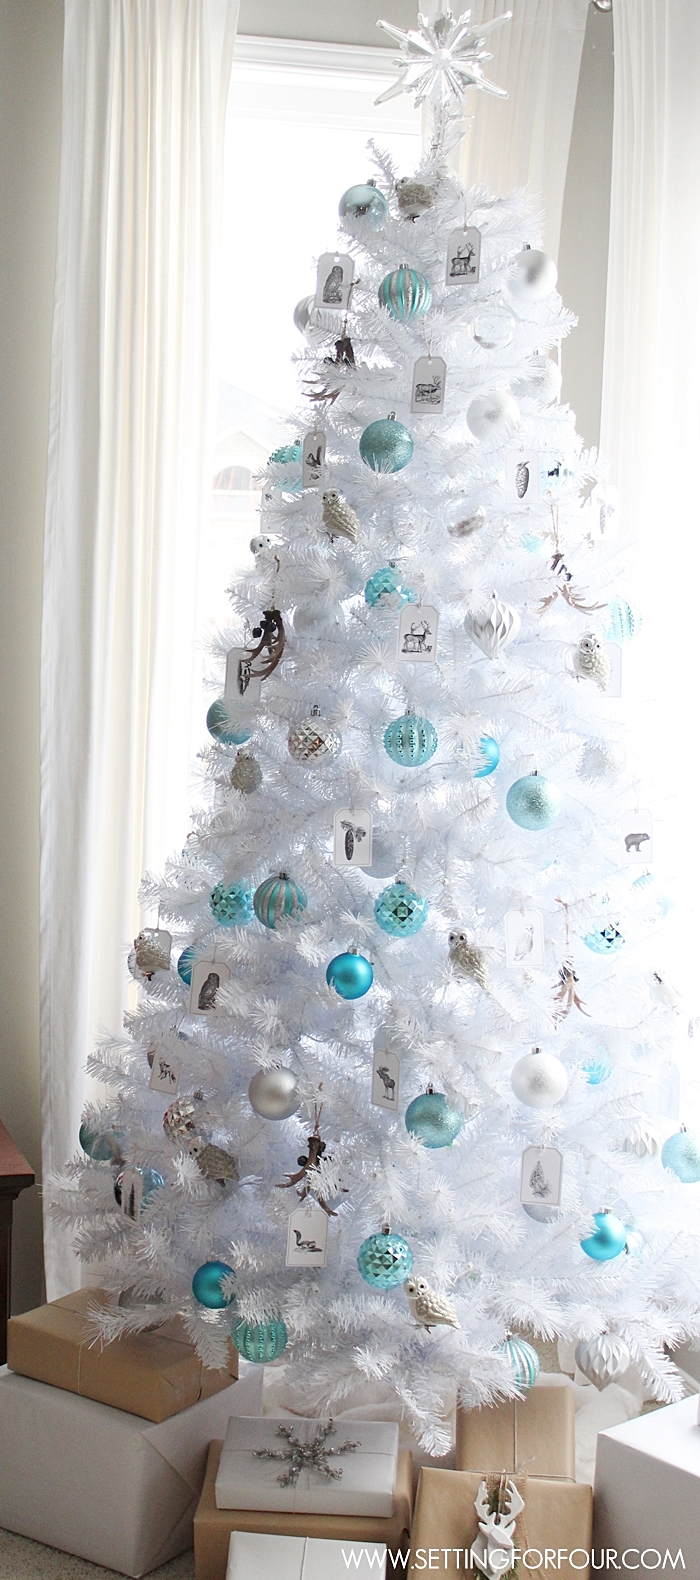 18 Creative Christmas Tree Decorating Ideas - Style Motivation